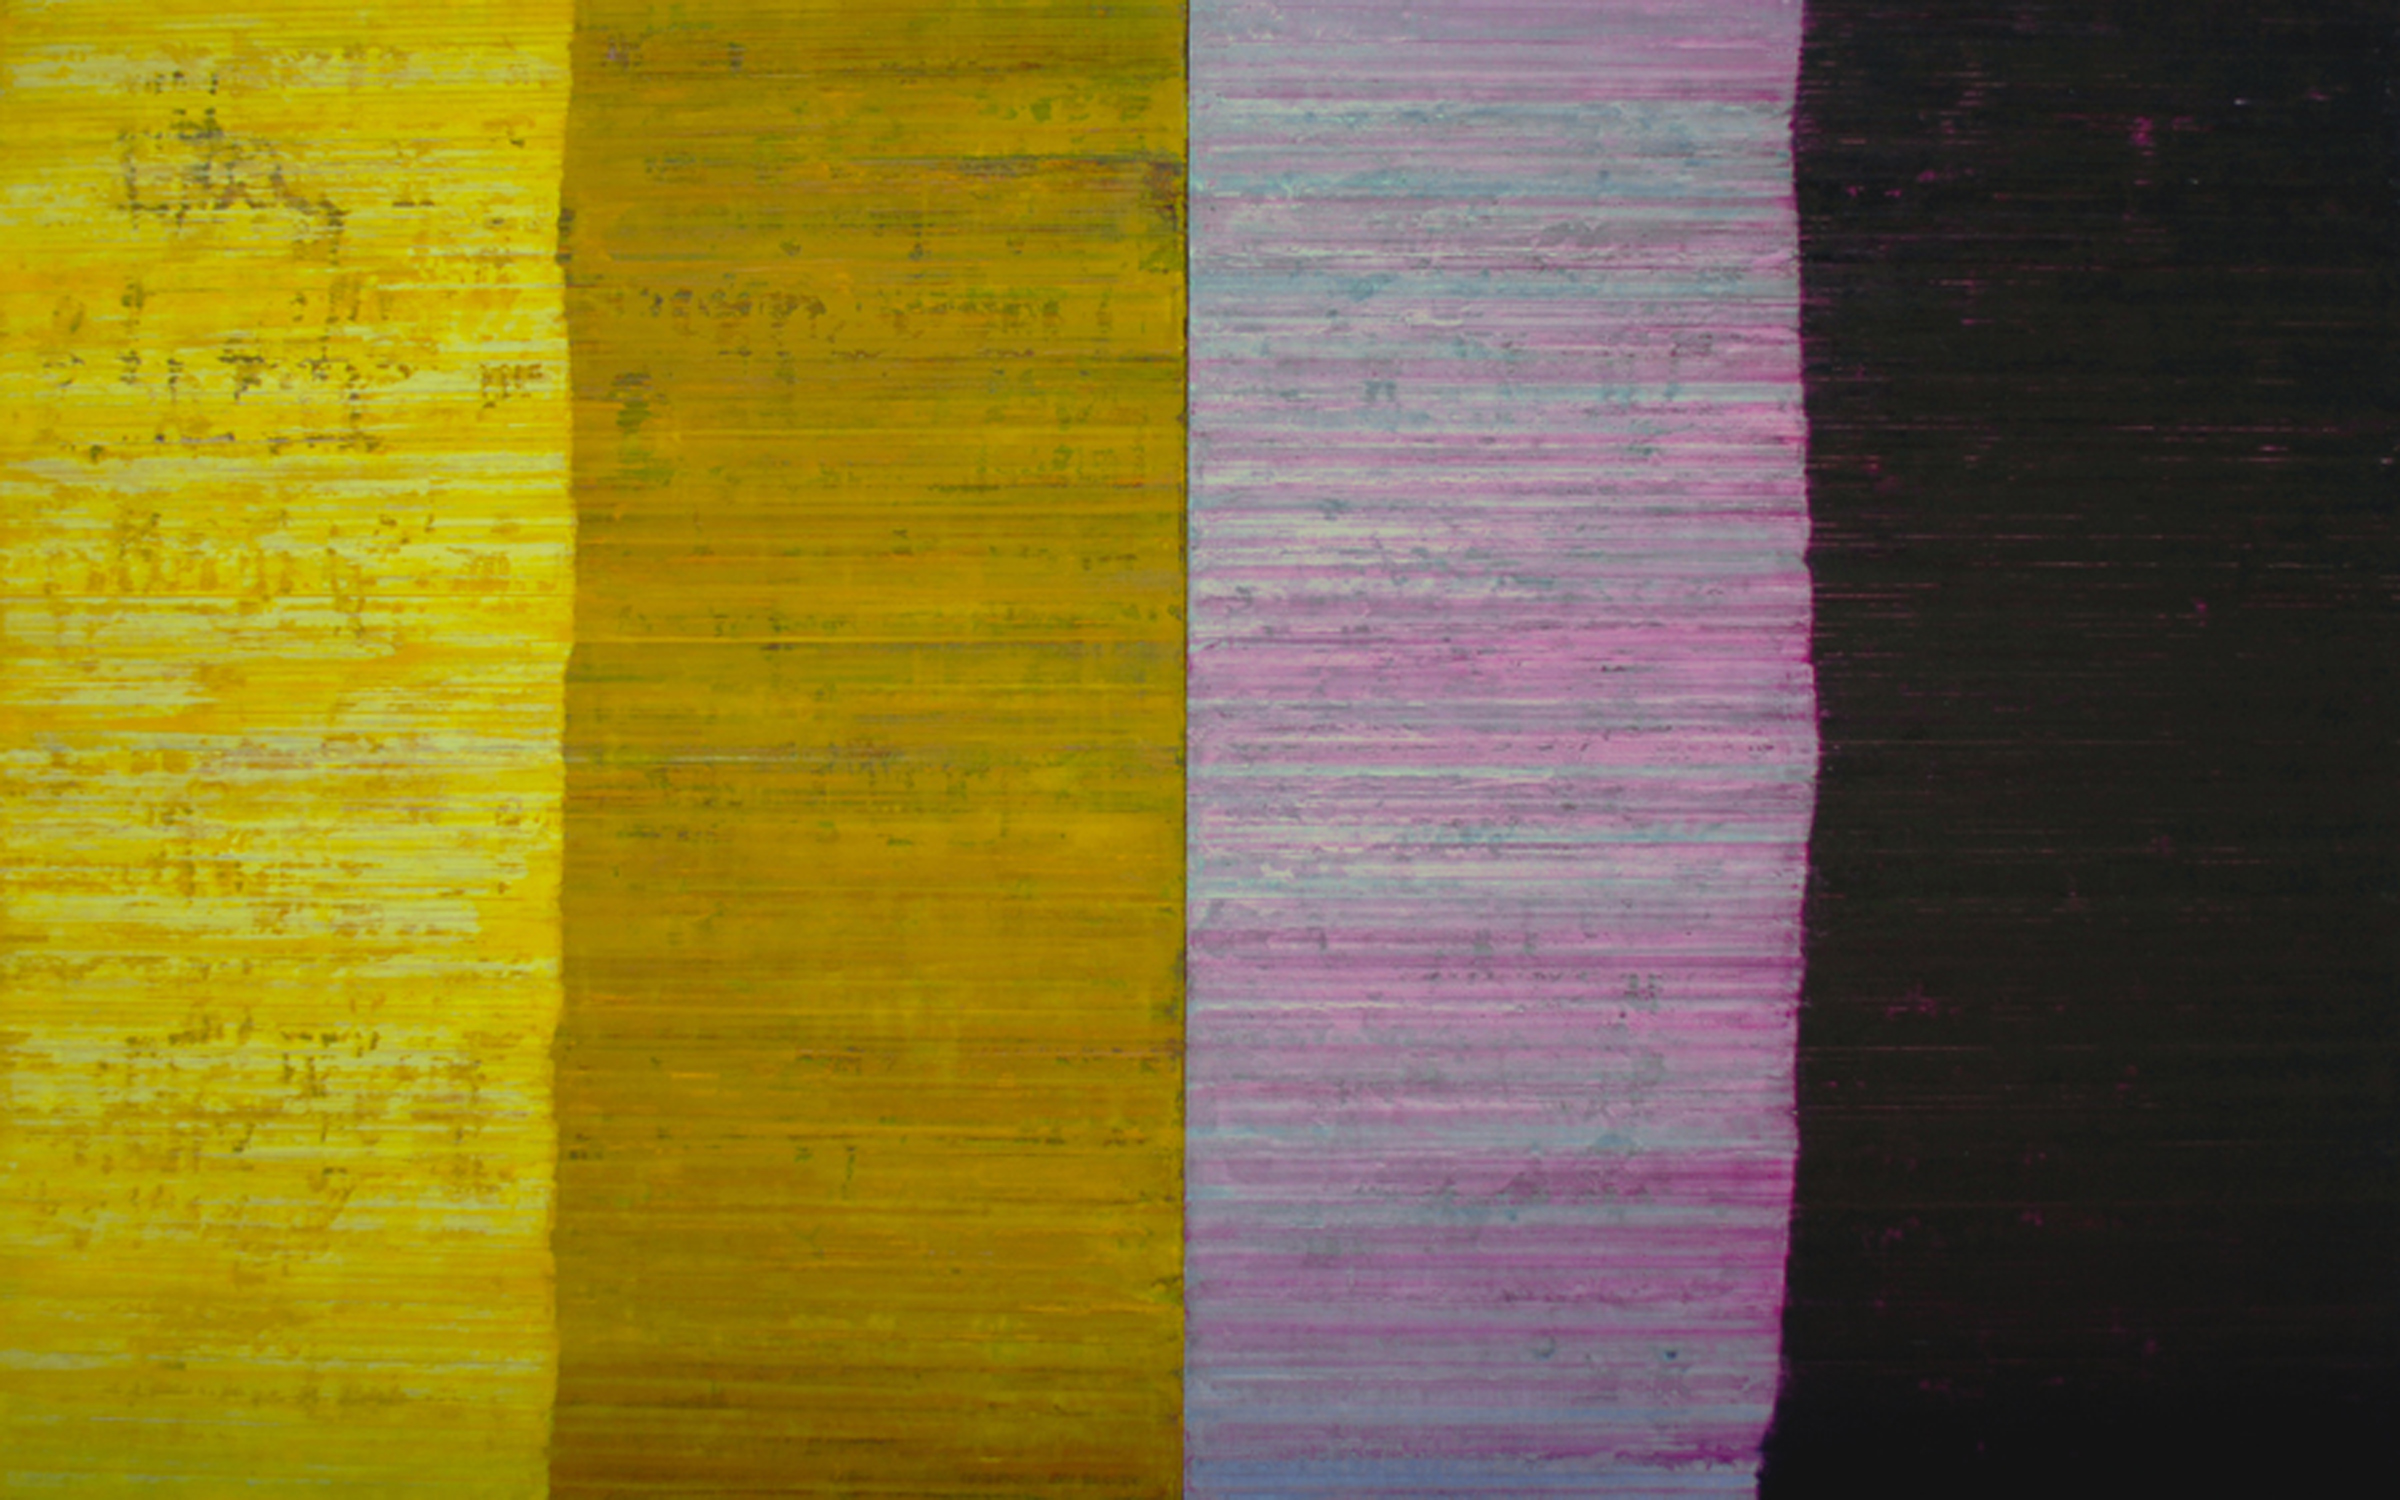 Linea Terminale: 10.11, 2011, Oil on linen over panels, 20 x 36 inches.